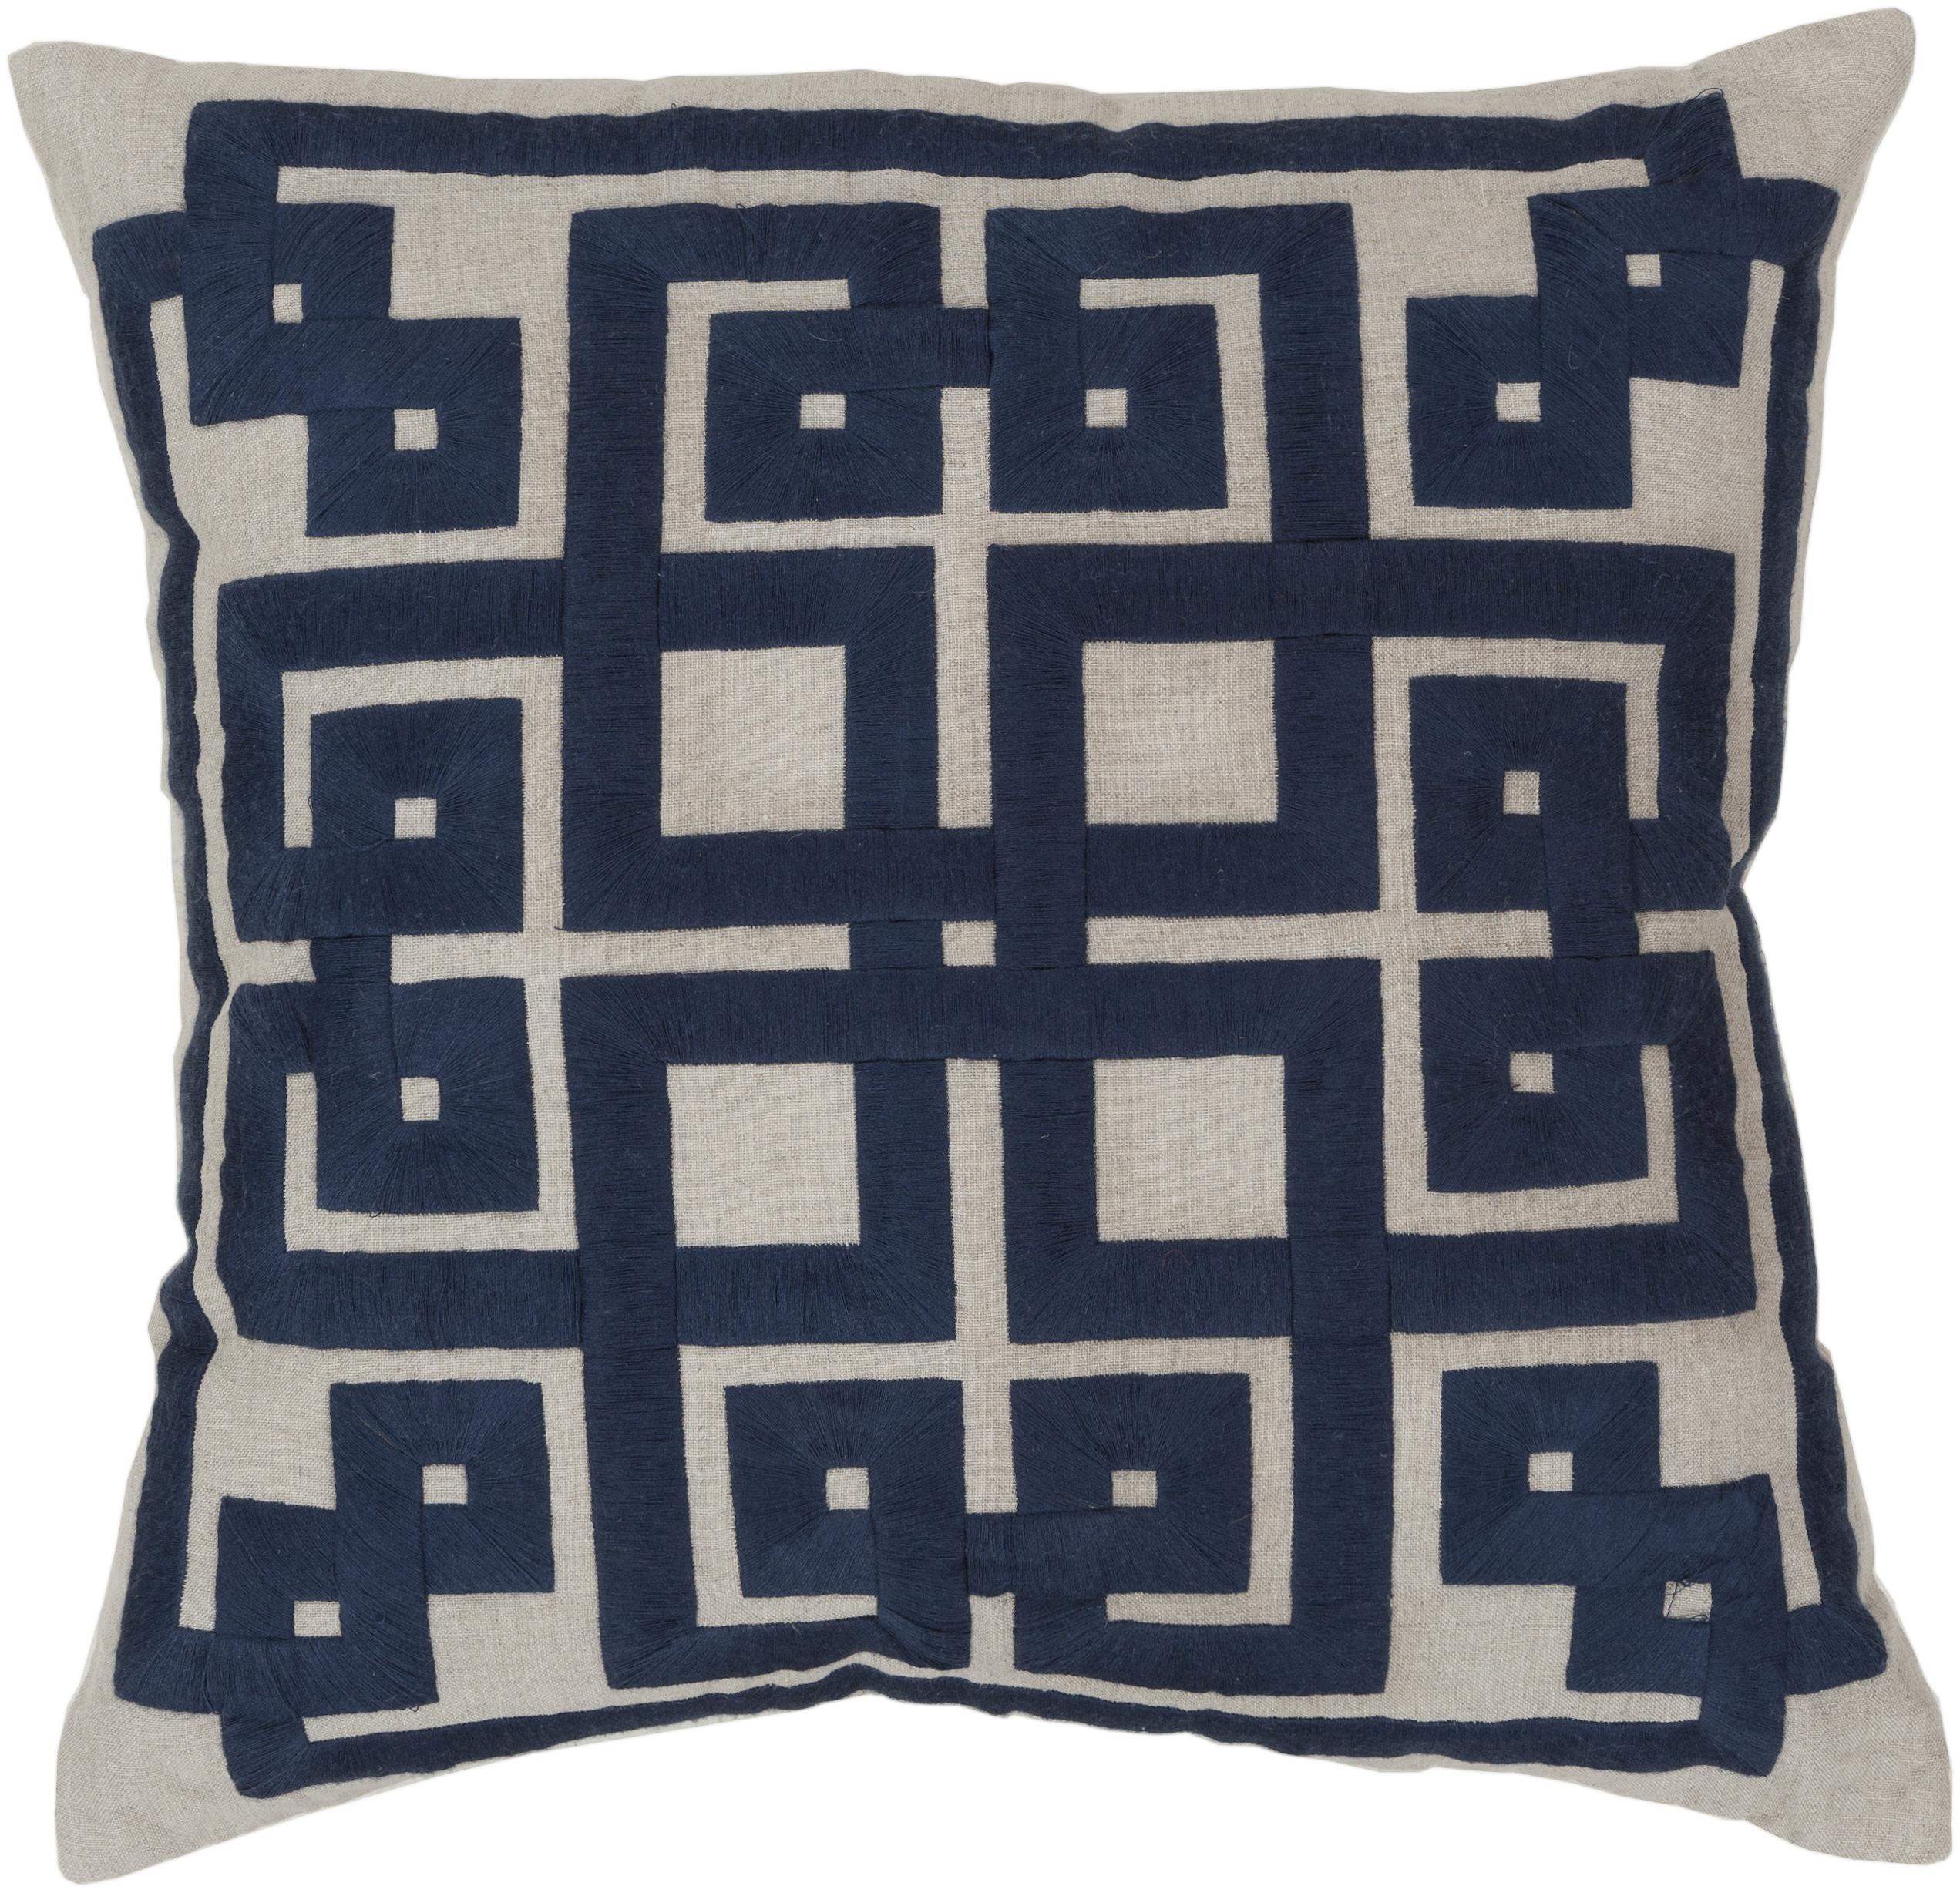 "Surya Rugs Pillows 20"" x 20"" Pillow - Item Number: LD002-2020P"